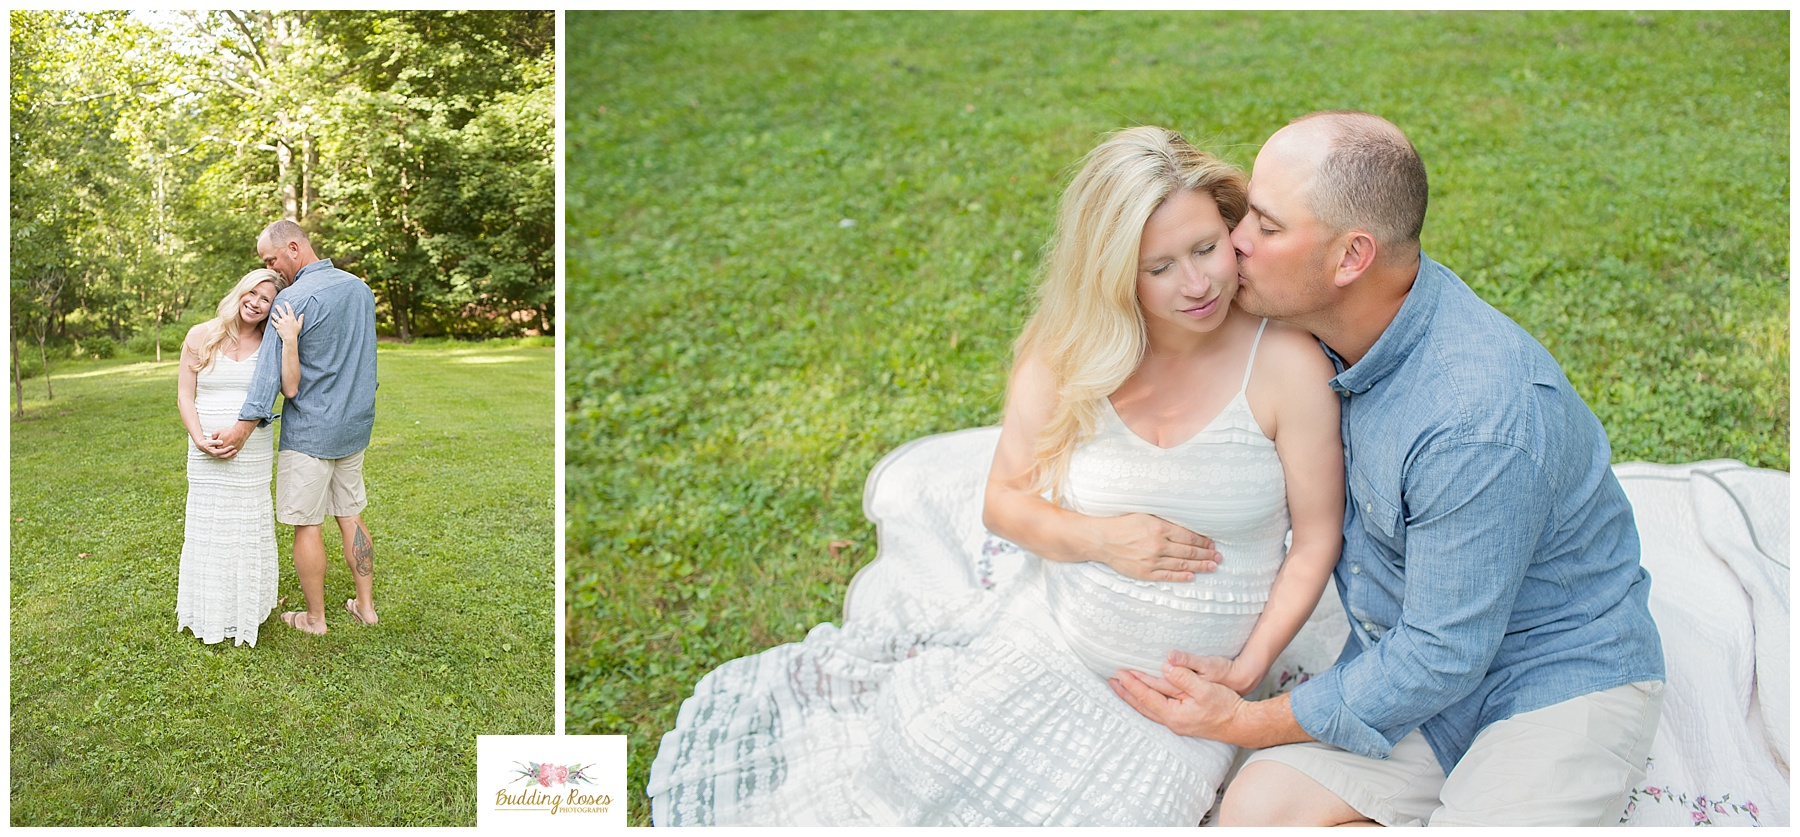 frenchtown nj maternity photo shoot, maternity  pictures nj, maternity photographer nj, maternity photographer near me, best maternity photographer in nj